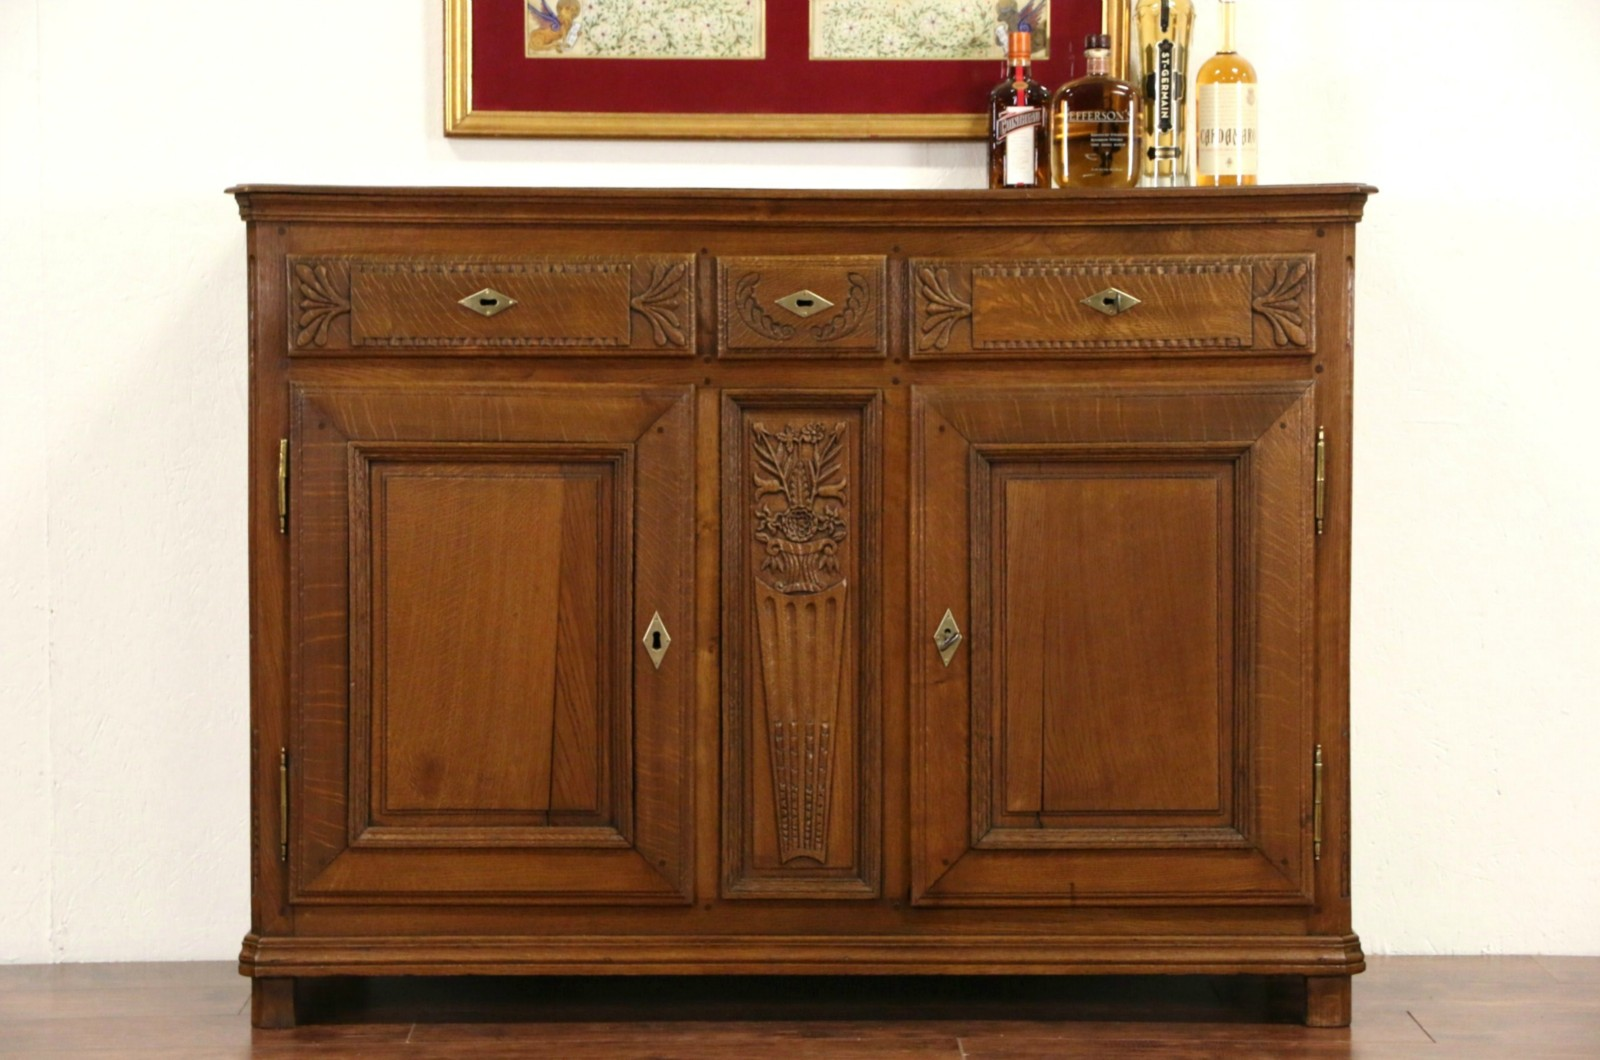 french country kitchen chairs sears suites sold - 1820's antique oak server, sideboard ...